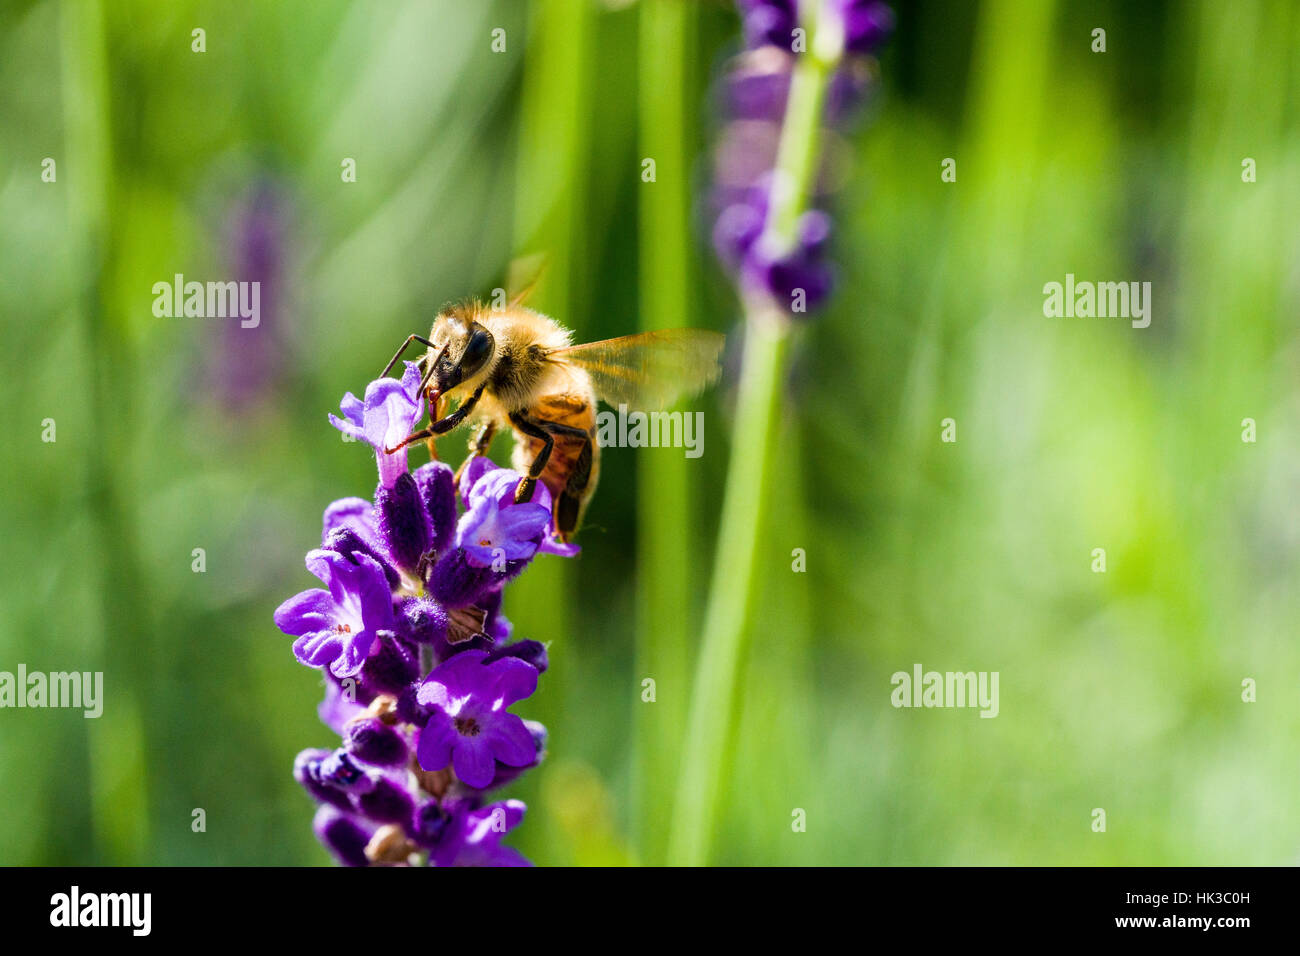 A Carniolan honey bee (Apis mellifera carnica) is collecting nectar at a purple Lavender (Lavandula) blossom - Stock Image